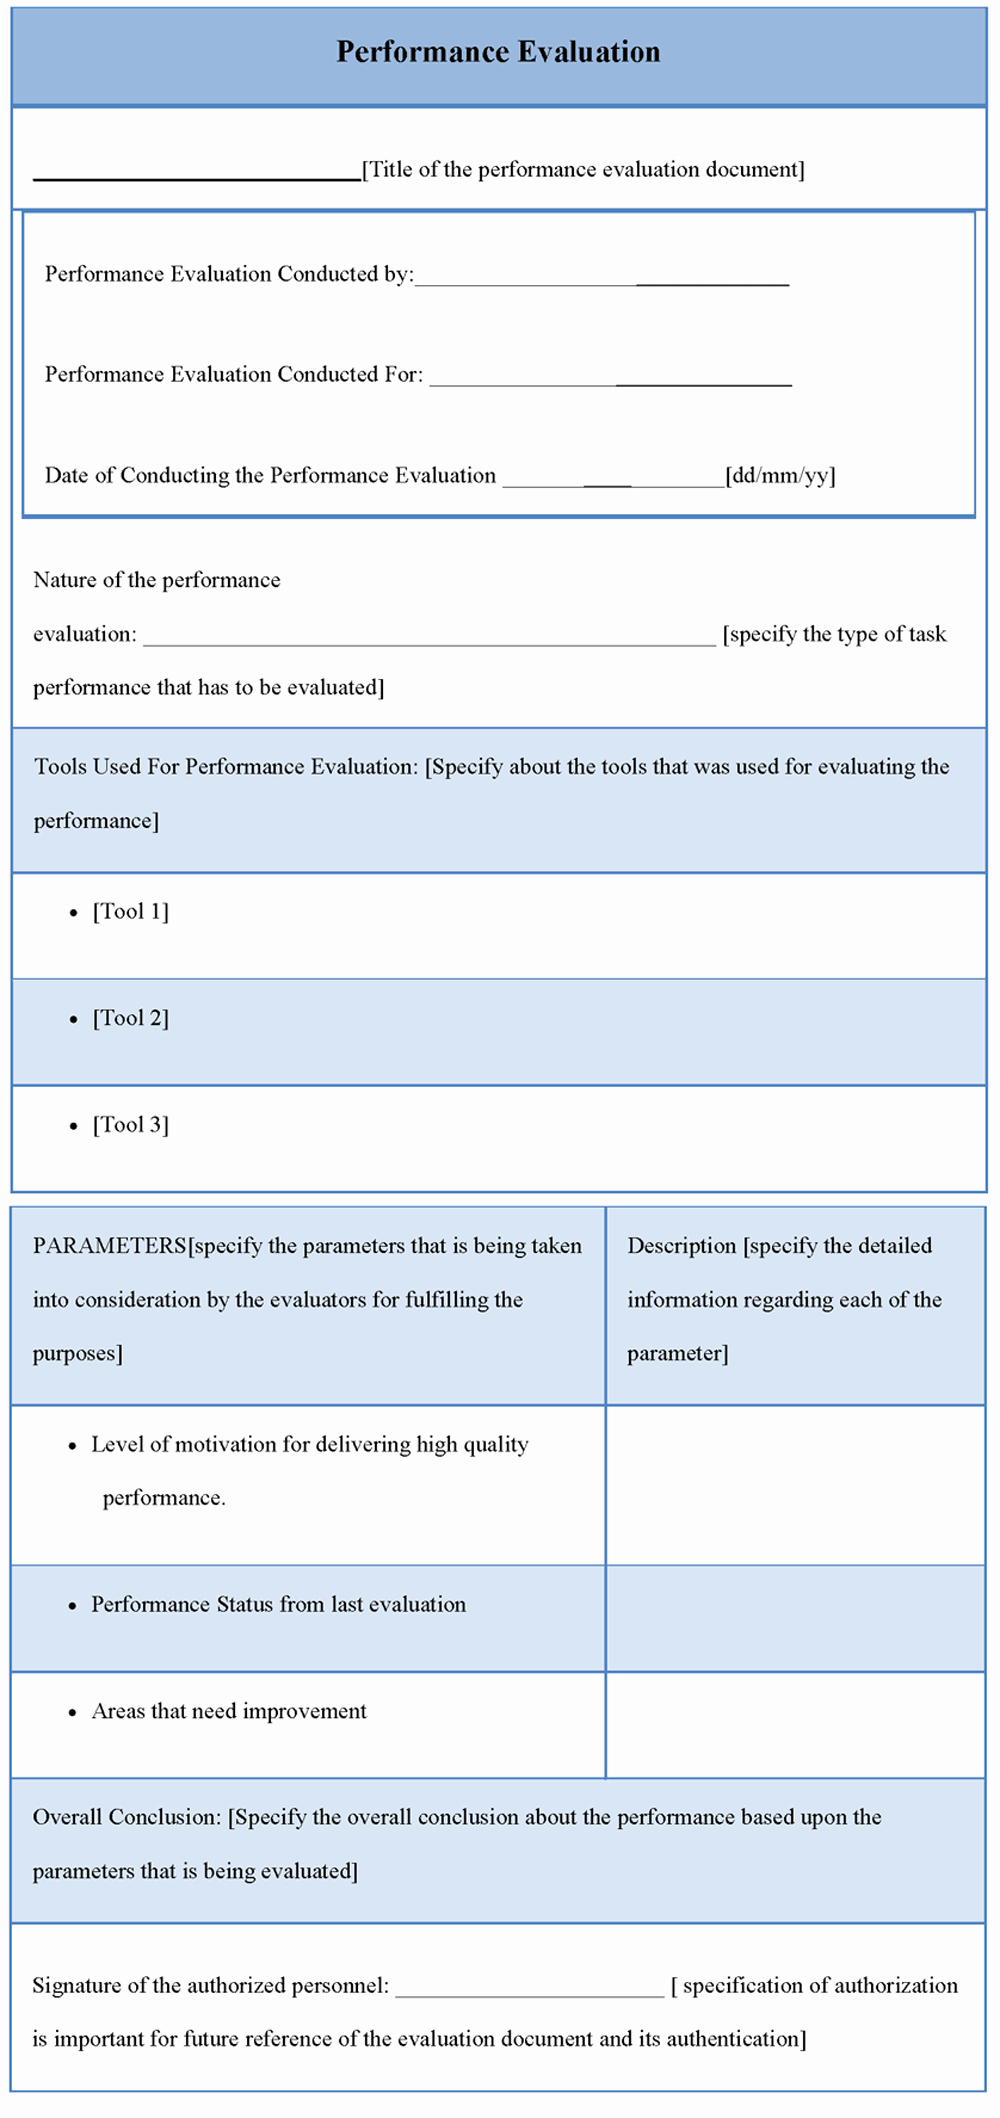 Performance Evaluation Template Word Fresh Evaluation Template for Performance Template Of